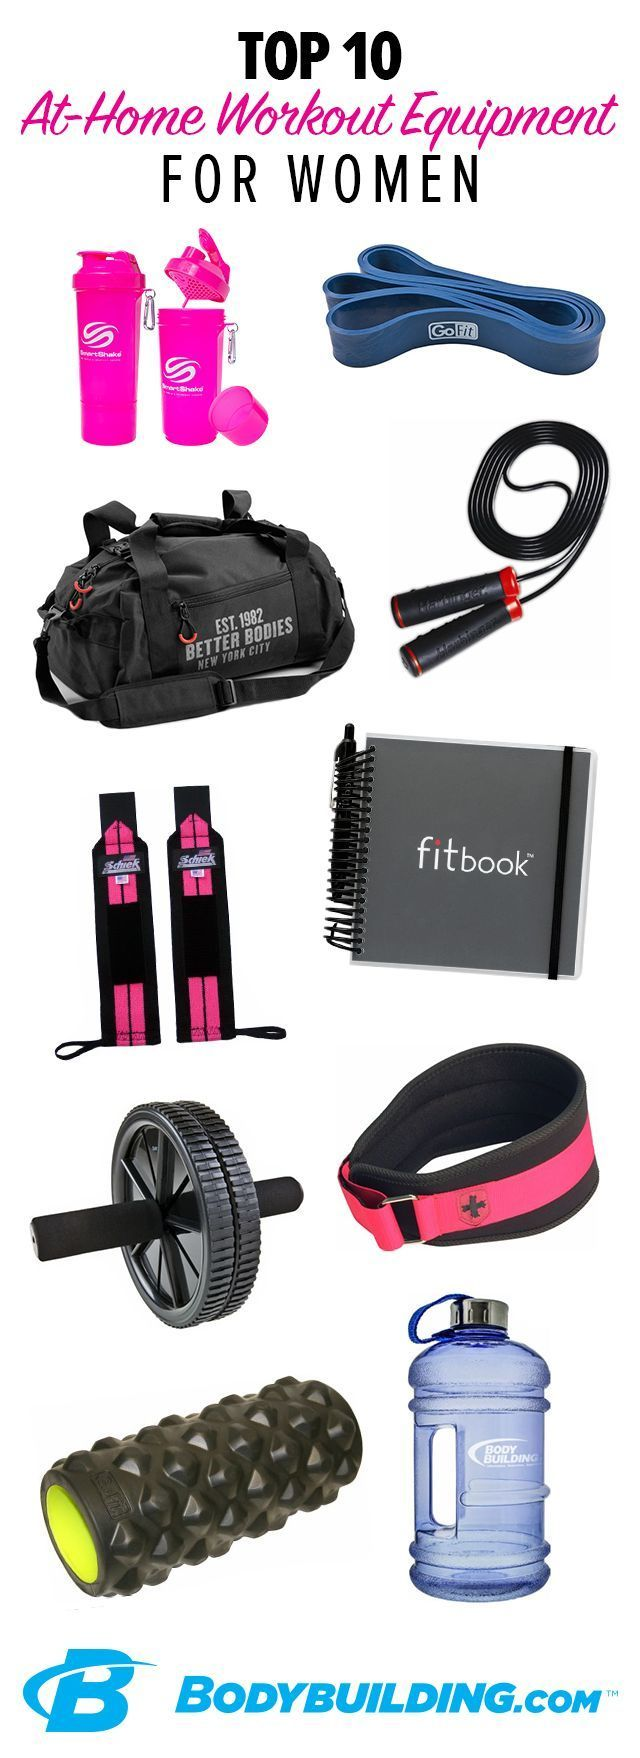 TOP 10 AT HOME WORKOUT EQUIPMENT FOR WOMEN Who Says You Need A Gym